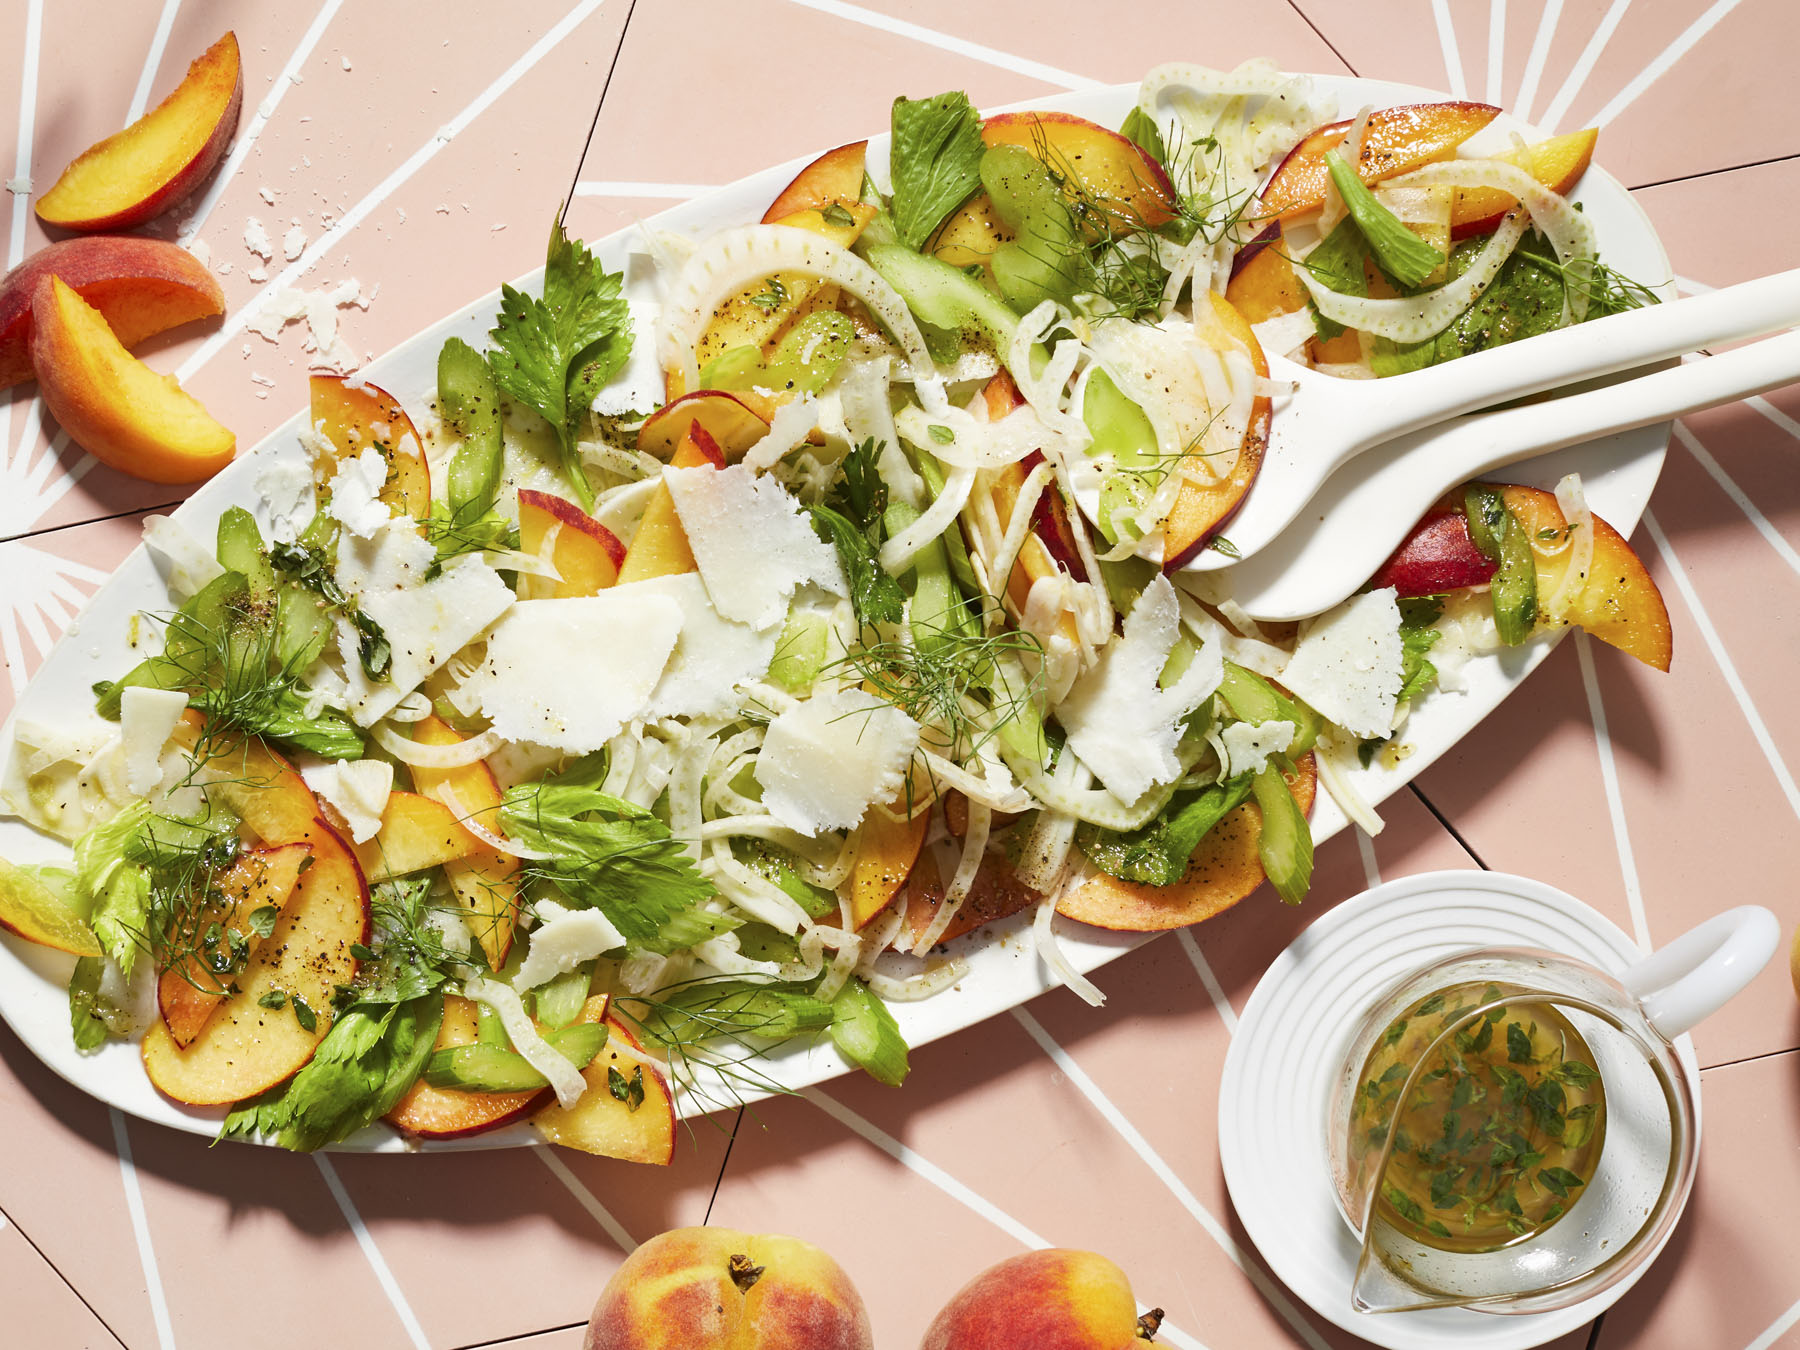 Peach-Fennel Salad with Pecorino